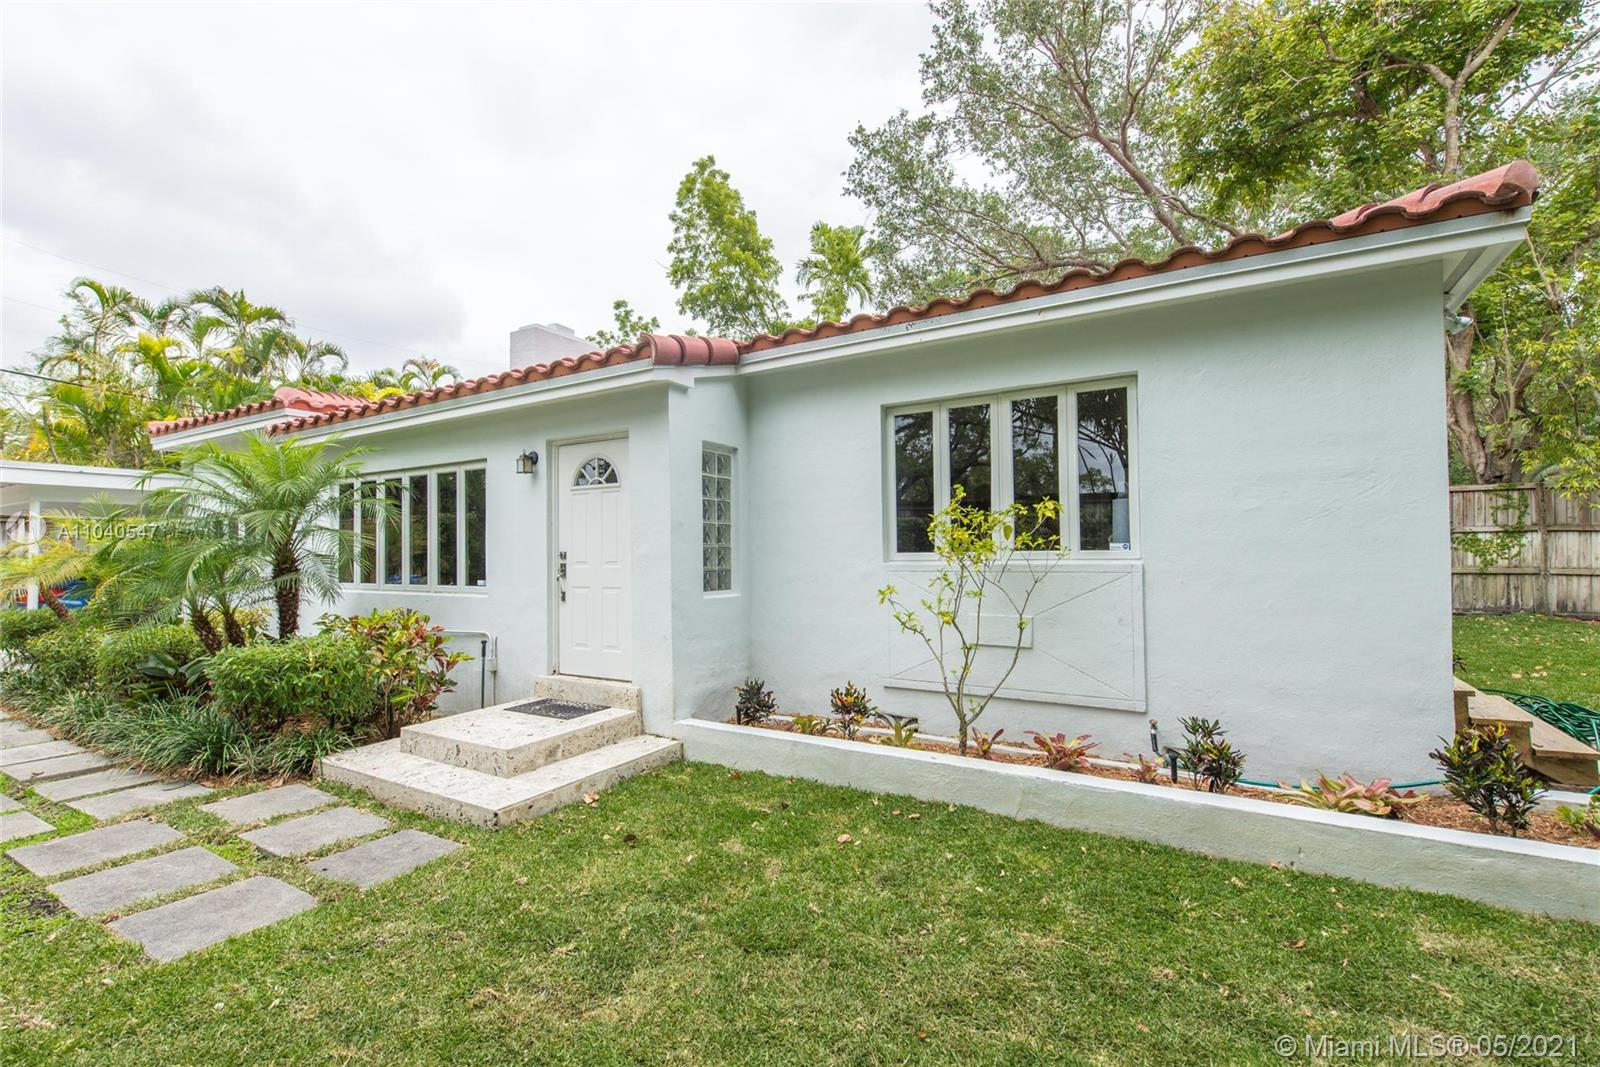 Lovely mid-century bungalow surrounded by tall privacy fence &  lush tropical garden. Located  across the street from Merrie Christmas Park, a South Florida landmark known for it's expansive grounds canopied by huge Banyan trees. This updated home features light-filled living spaces including formal dining area, wood floors, original fireplace, 2 updated bathrooms, laundry/storage room, Elfa closet systems & garden views from most rooms. Large kitchen w/ wood cabinetry & newer stainless appliances, opens to wood deck for year-round outdoor entertaining. Located in the highly rated Coconut Grove elementary school district. Close to the Grove village center's galleries, boutiques, cafes and bayfront parks & marinas. Minutes to South Miami & Coral Gables shopping & dining districts.